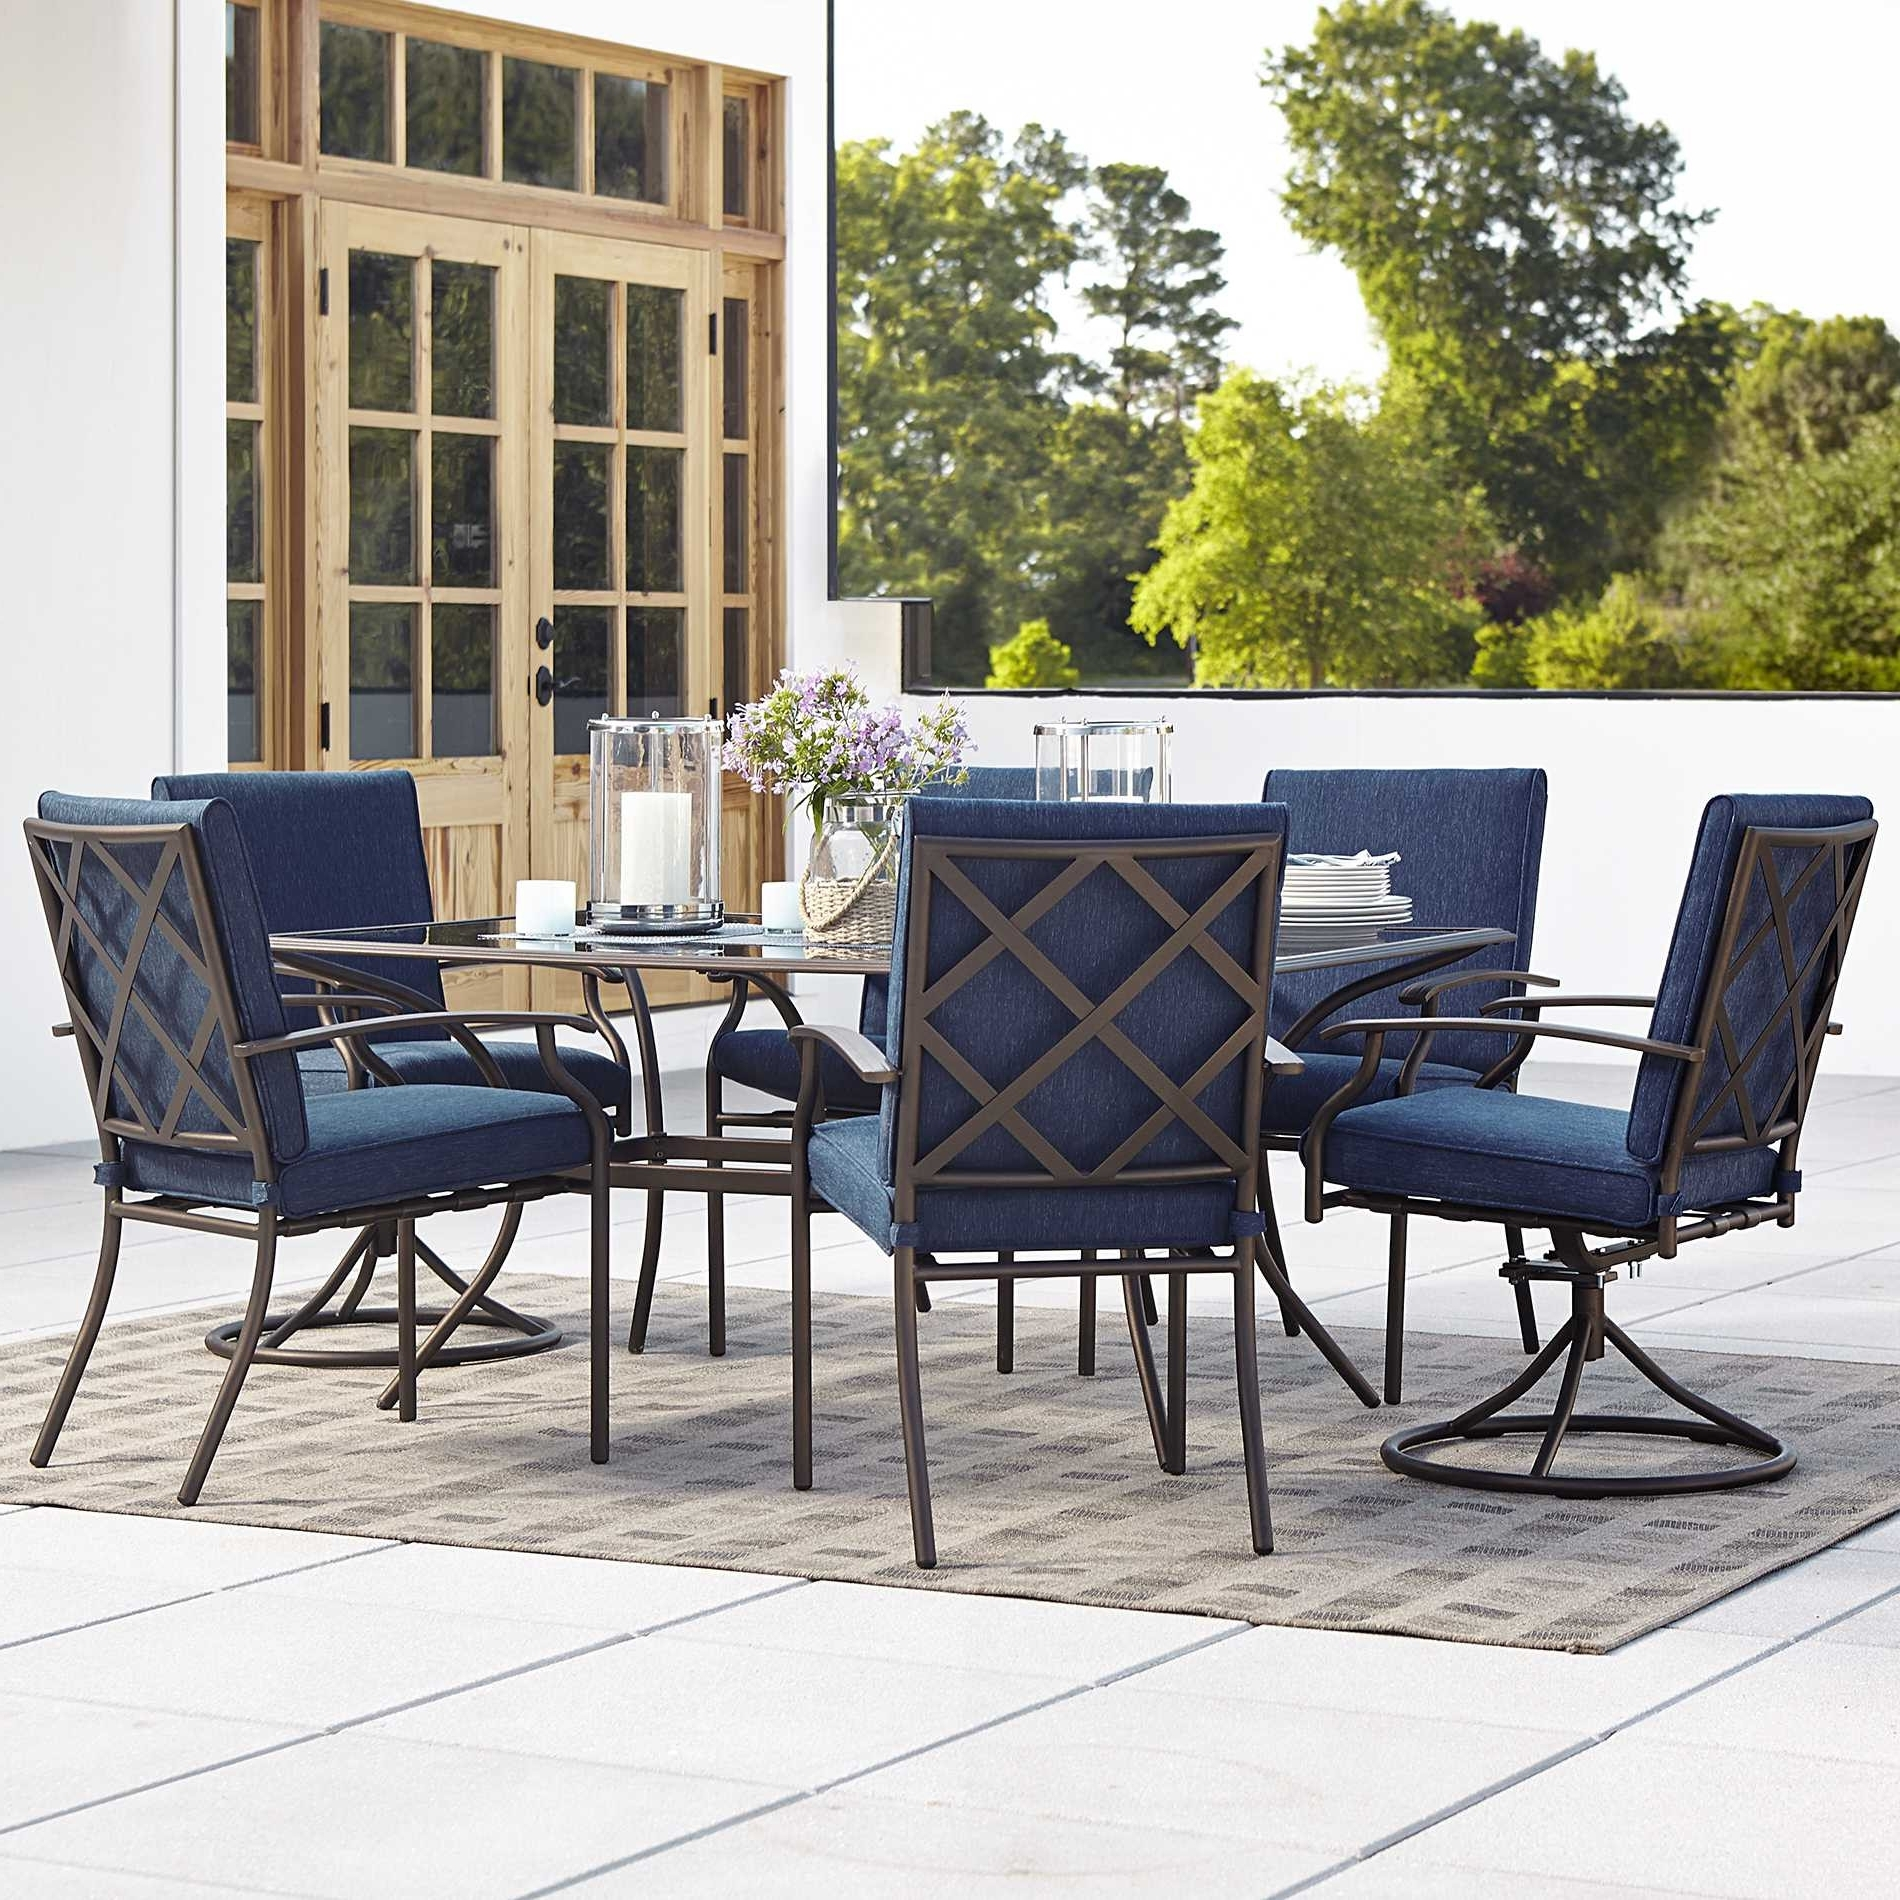 Trendy 30 Fresh Sears Outdoor Patio Furniture Ideas (View 16 of 20)